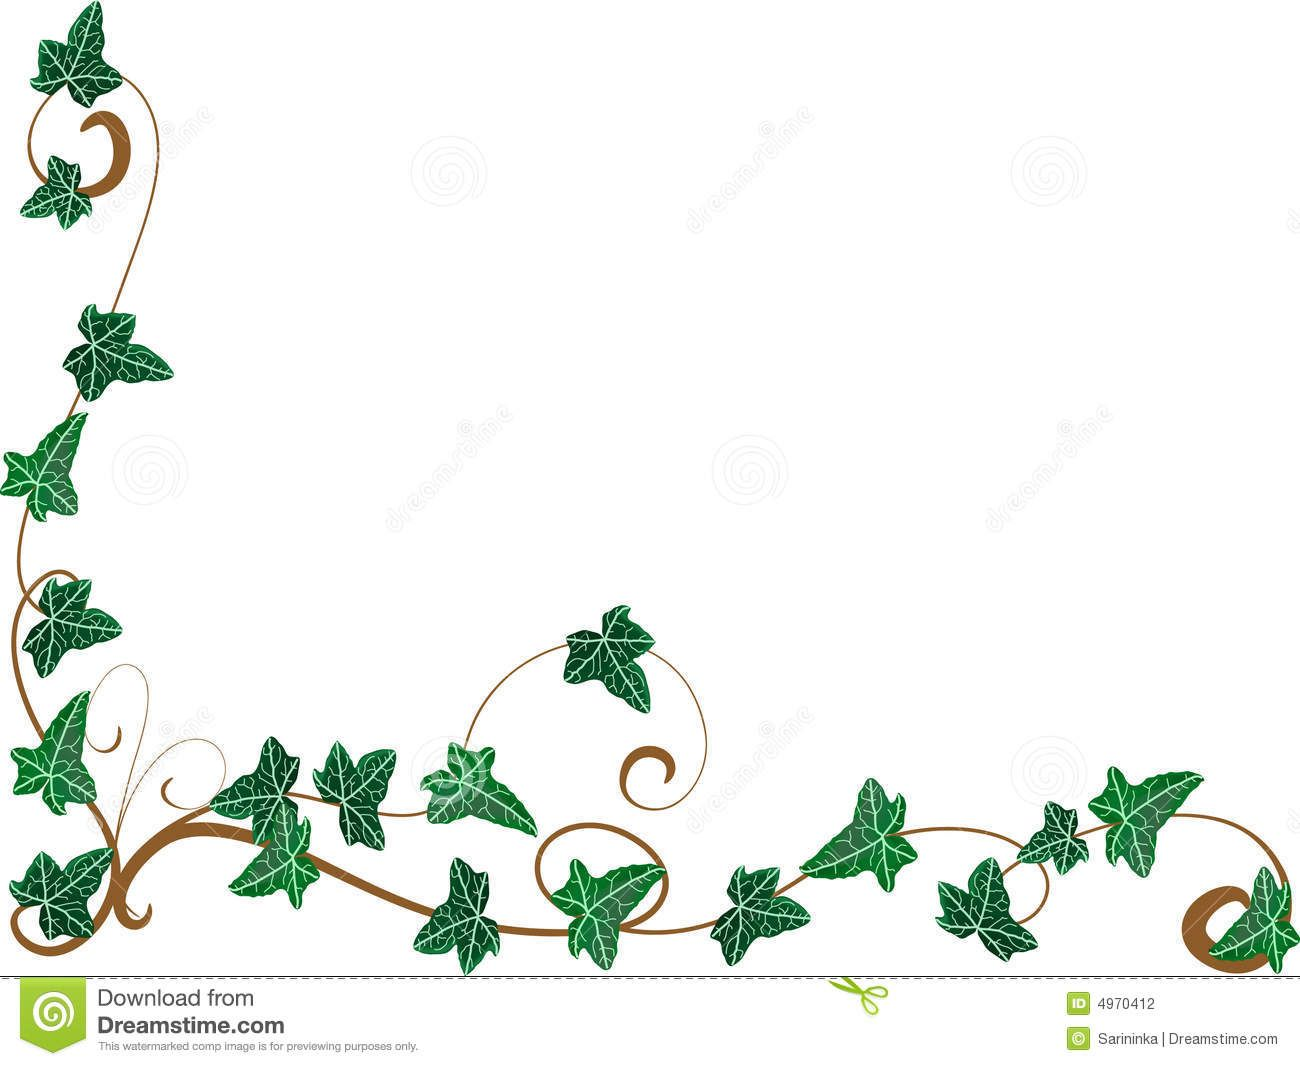 Ivy vine curved frame clipart clipart freeuse vine with maple like leaves drawing - Google zoeken | sketch ... clipart freeuse